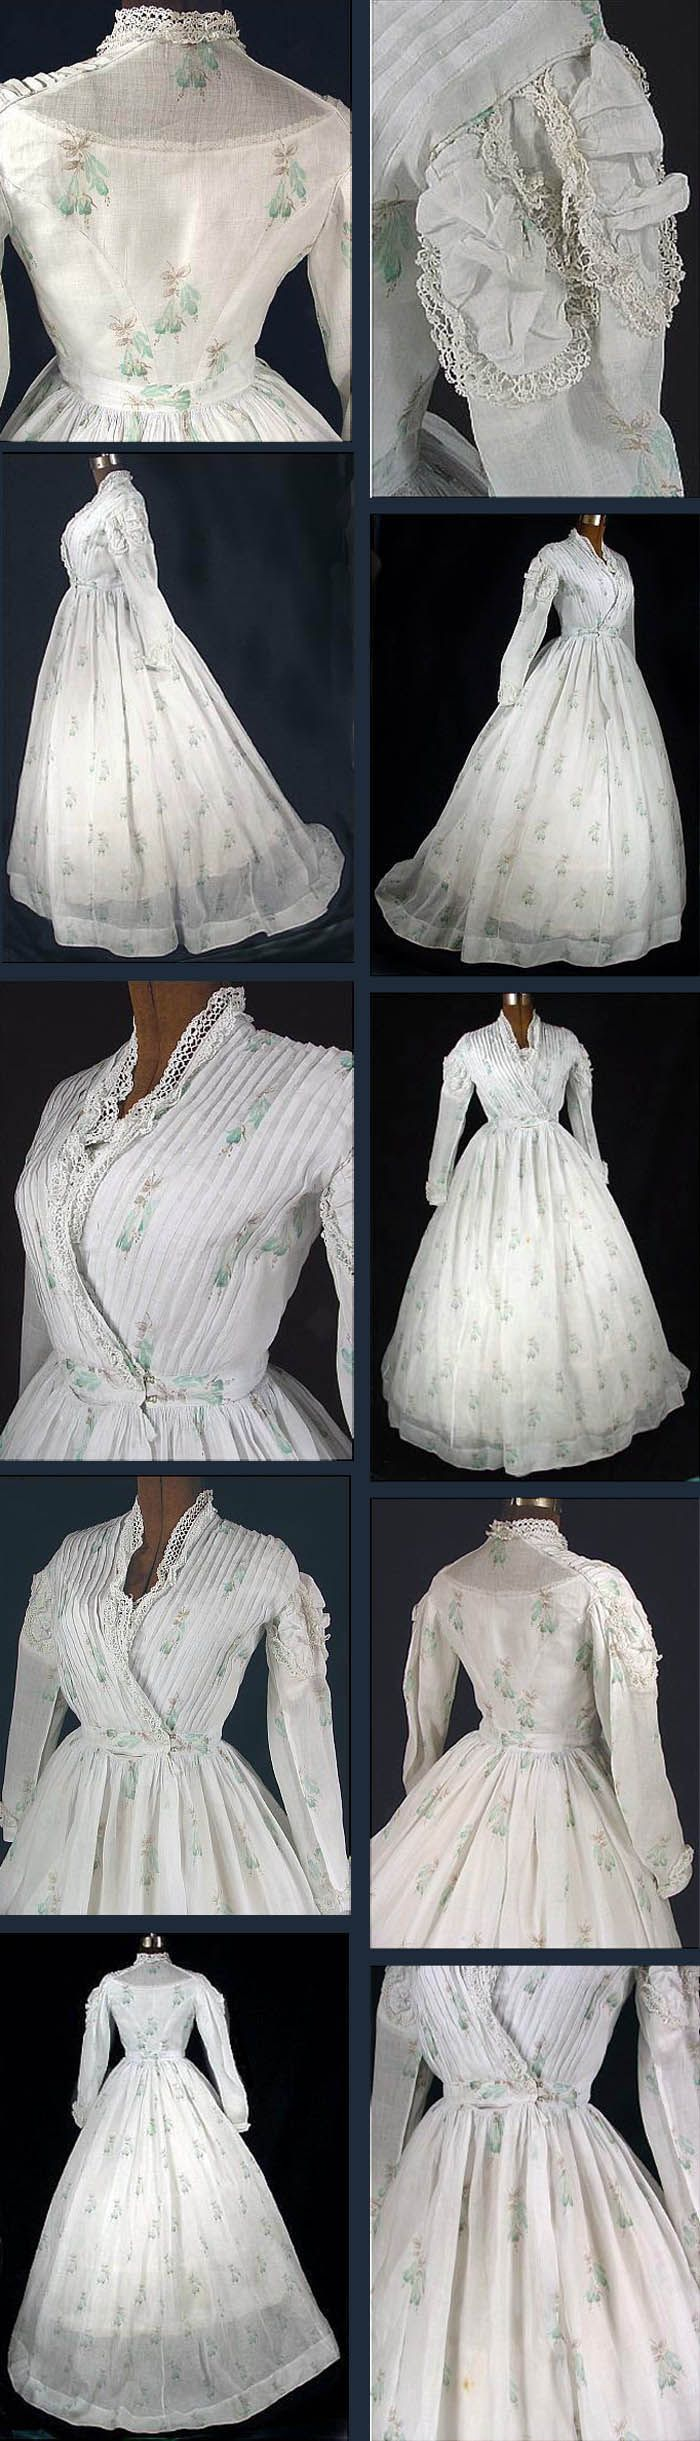 Summer dress ca. 1867. Sheer white cotton voile printed with light aqua and brown fuchsias and trimmed with linen bobbin lace. Bodice lined in white linen; separate modesty insert. Skirt has deep side pocket and small watch pocket at waist. Antique Dress via web.archive.org